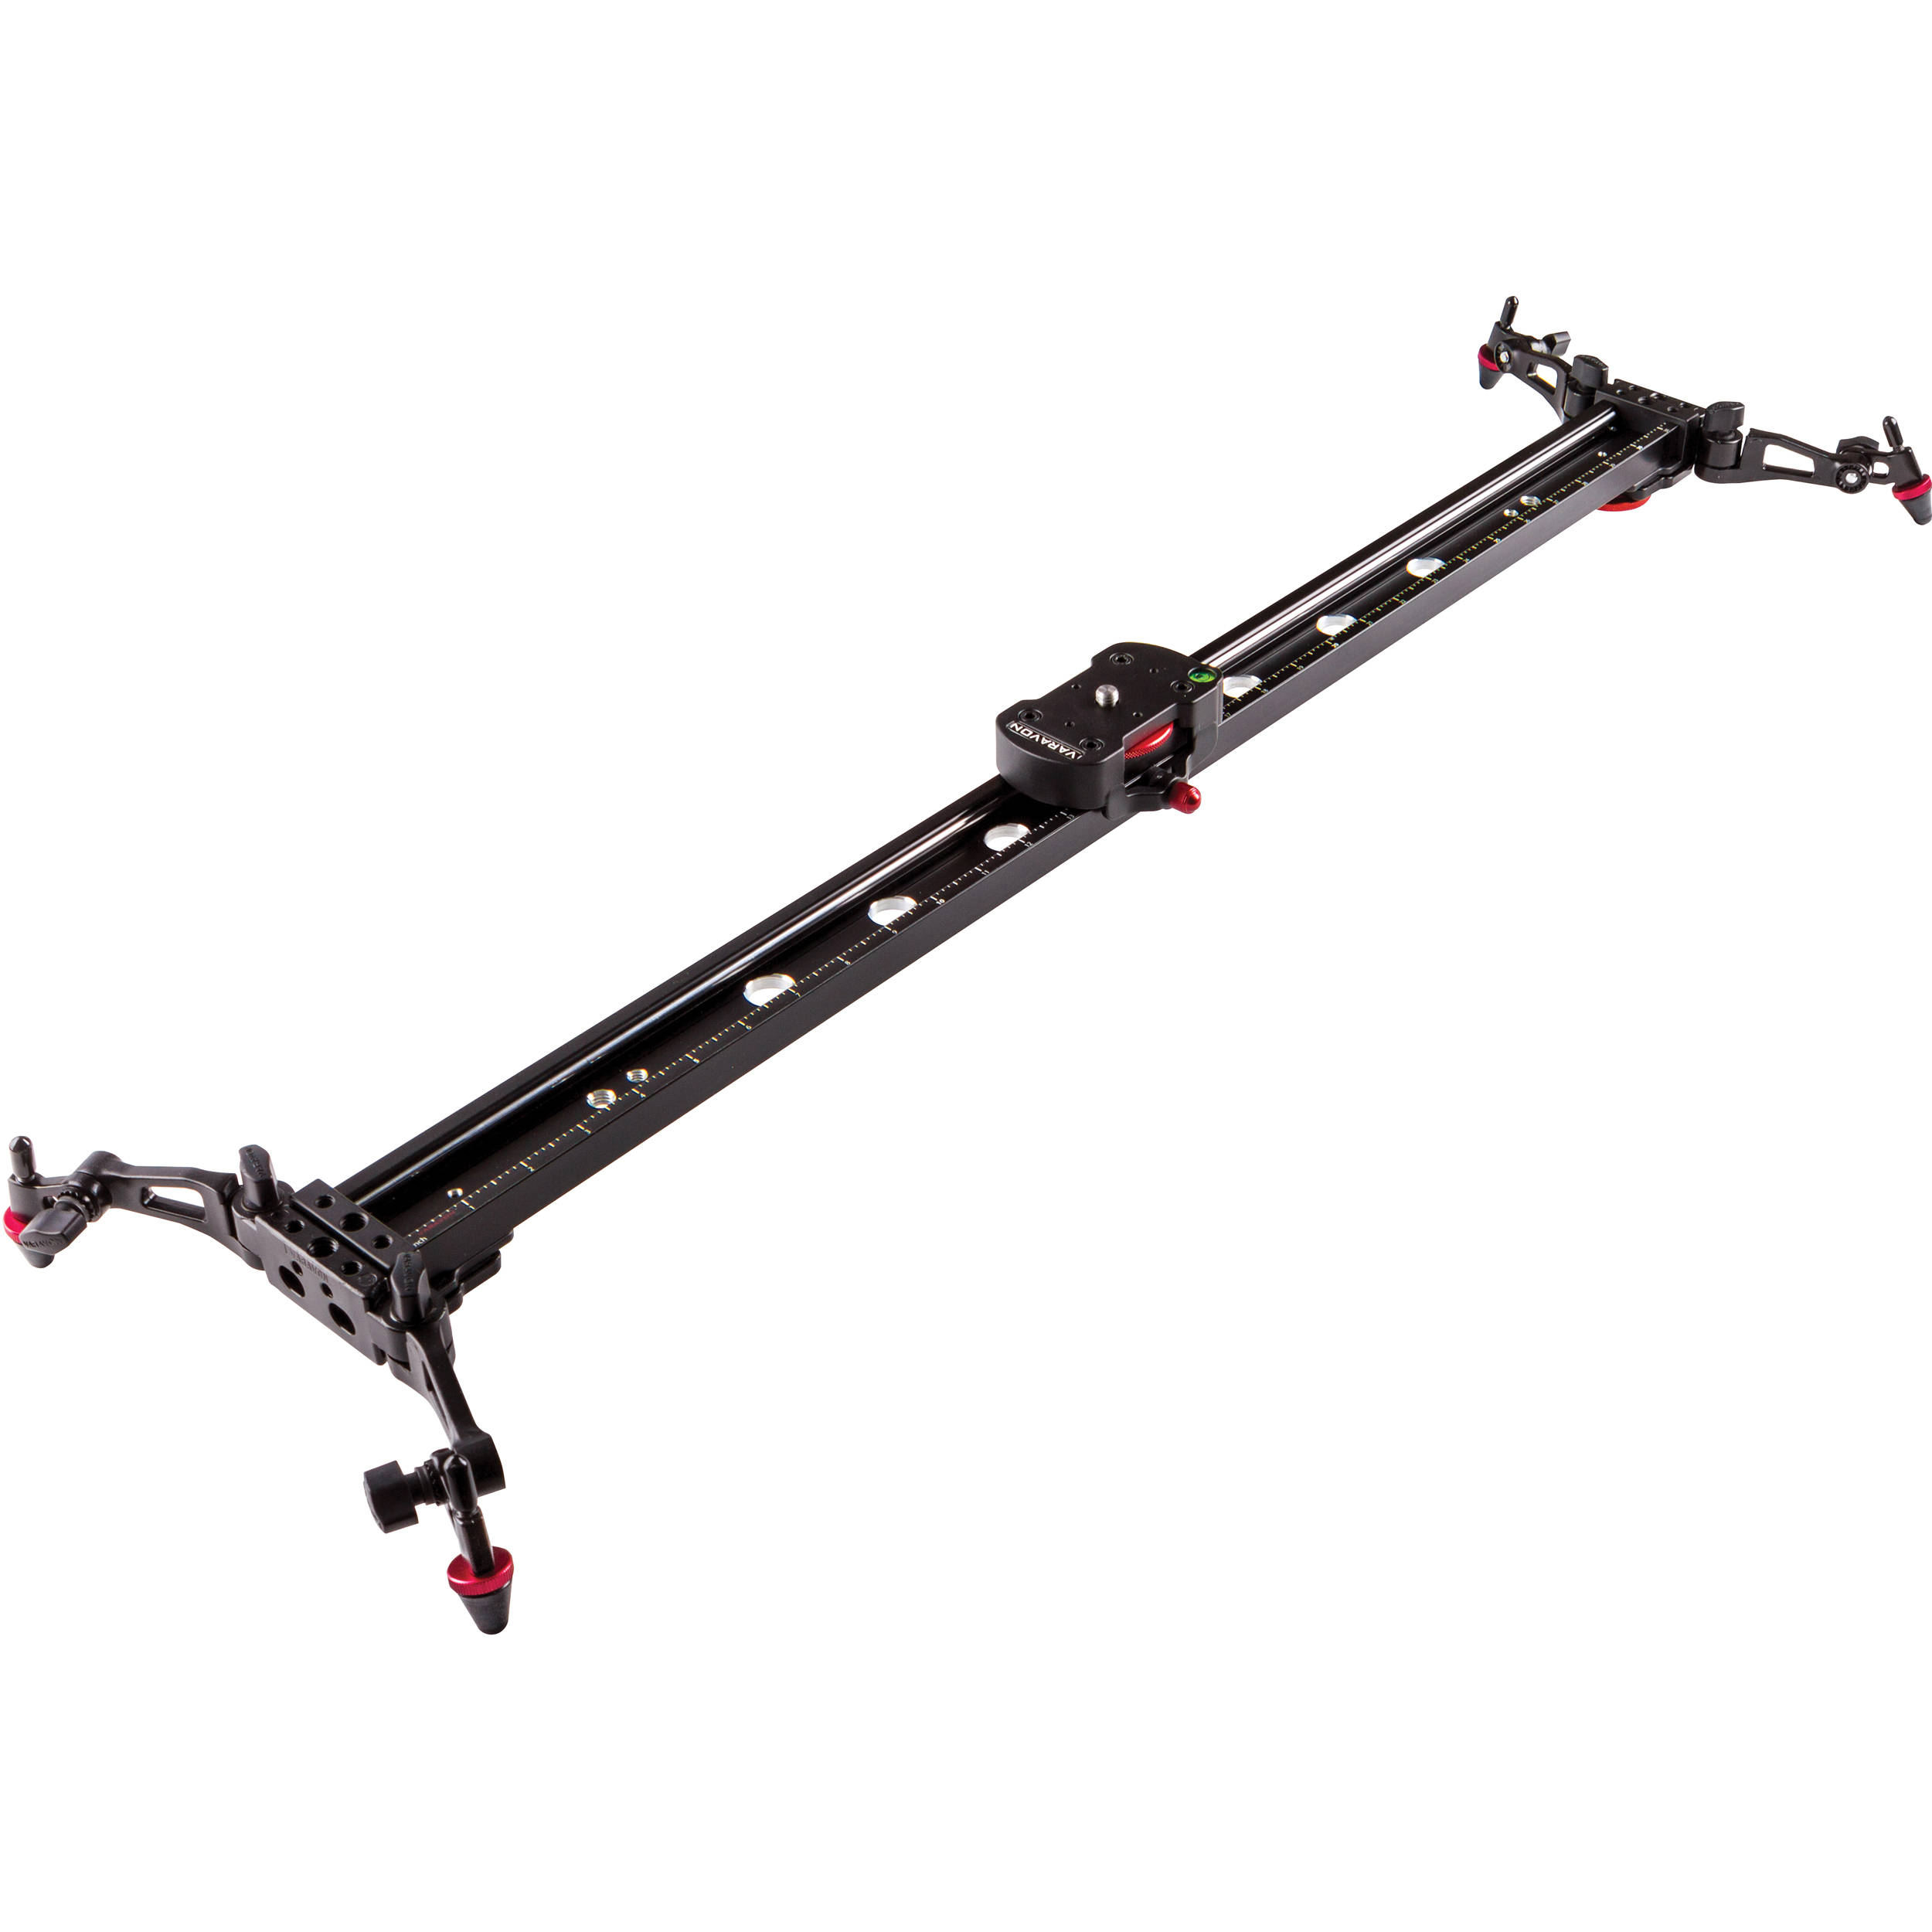 Varavon Slidecam V-1000 Camera Slider SL-V 1000 B&H Photo